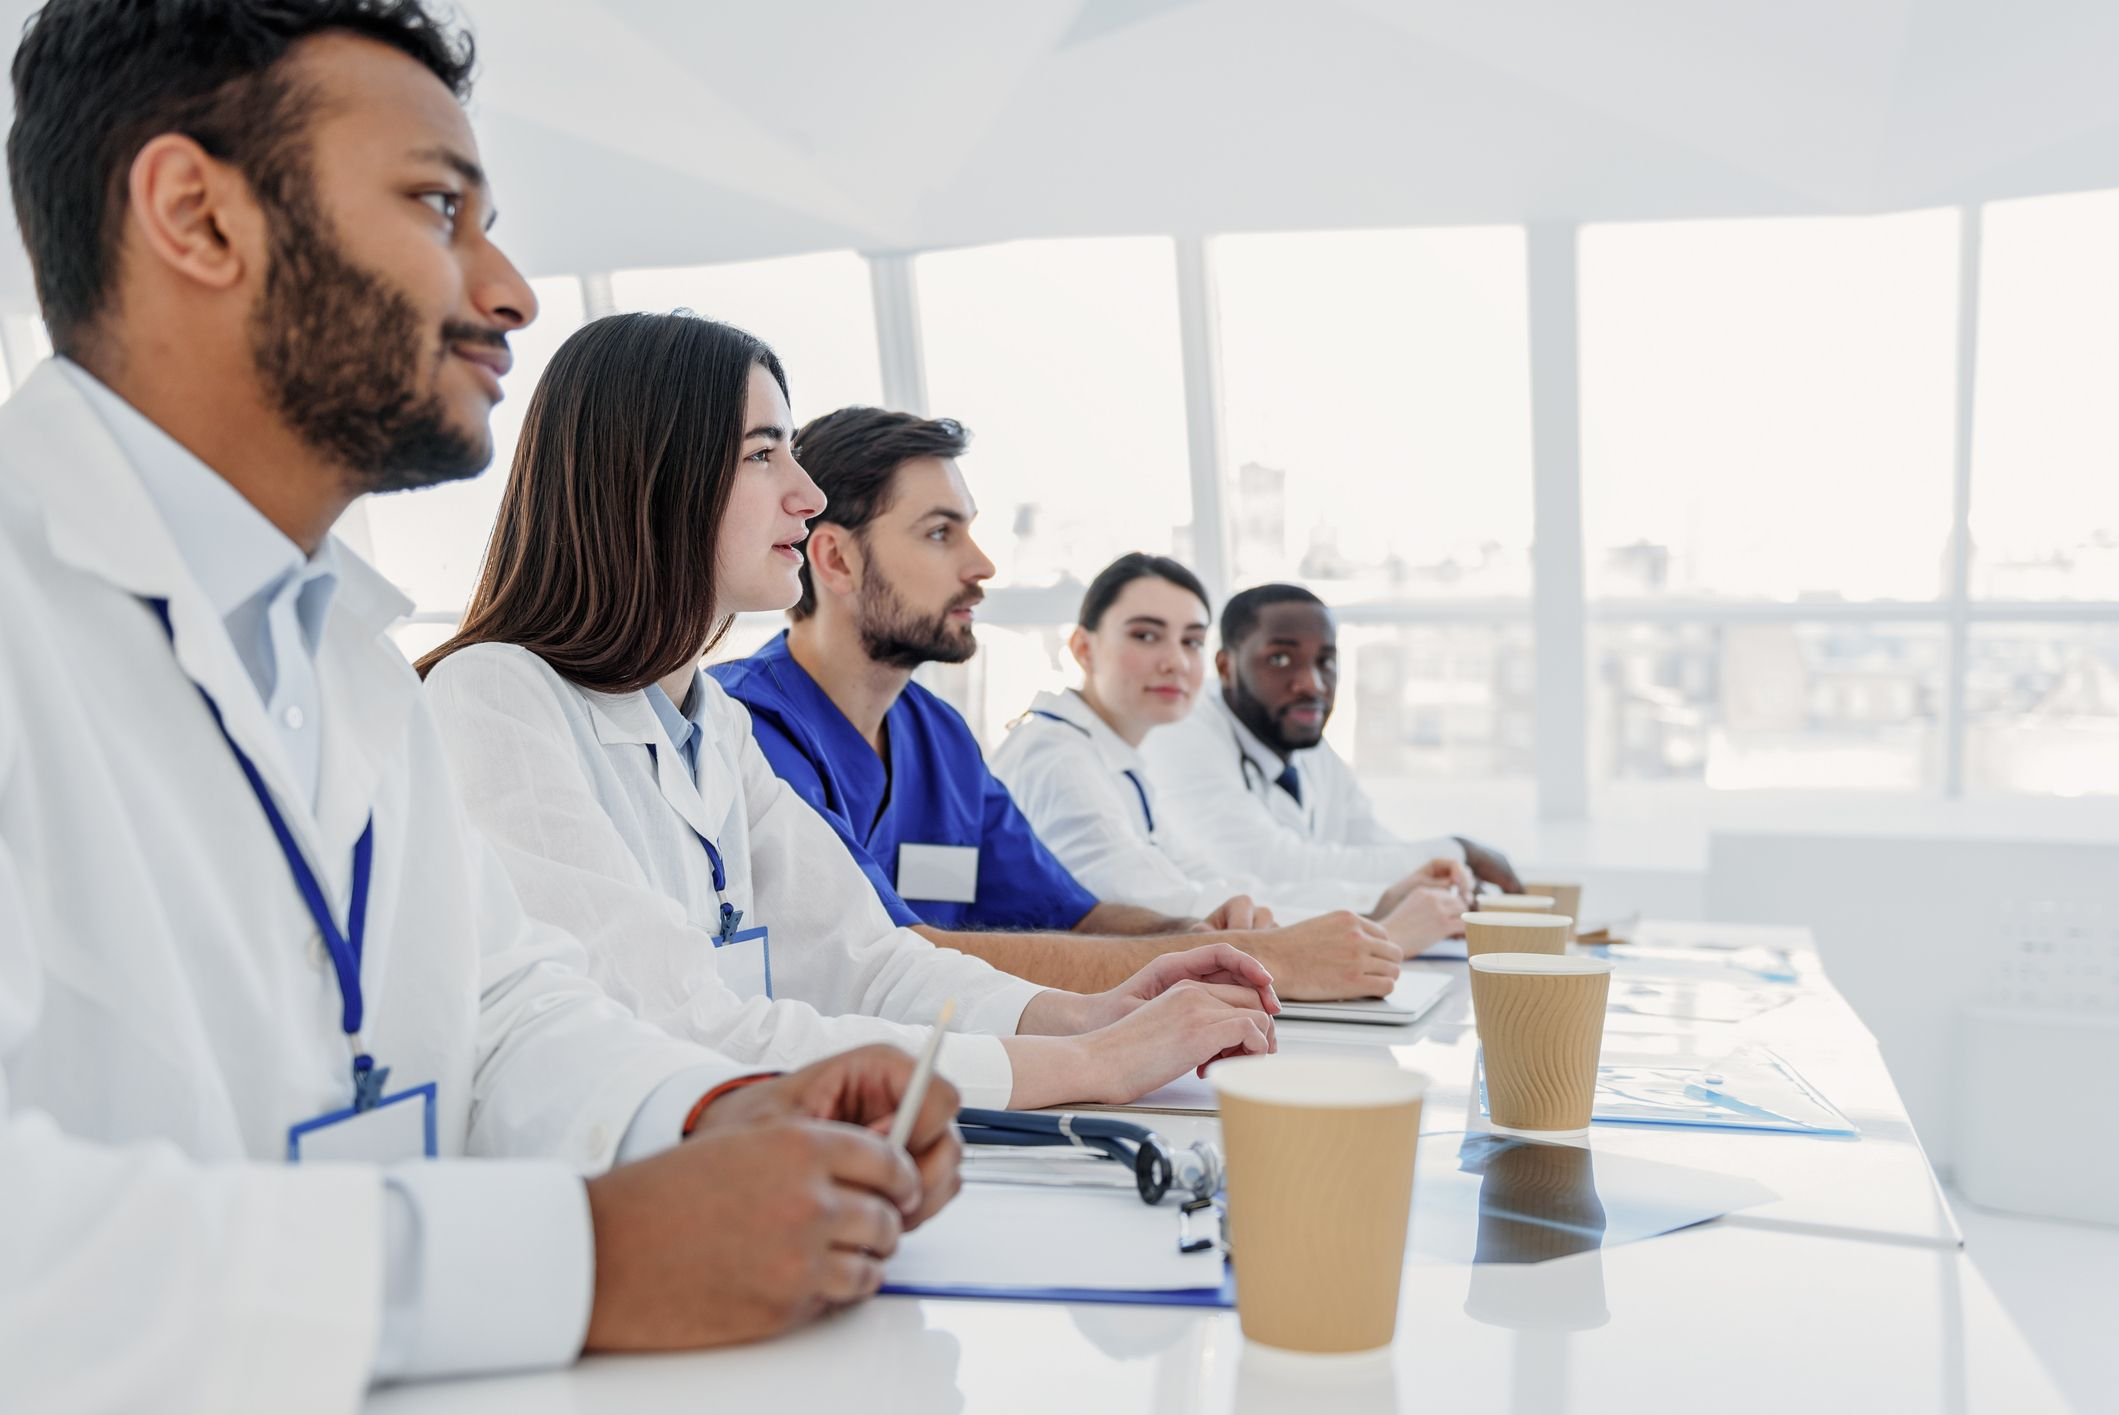 Here are the top medical conferences in primary care that